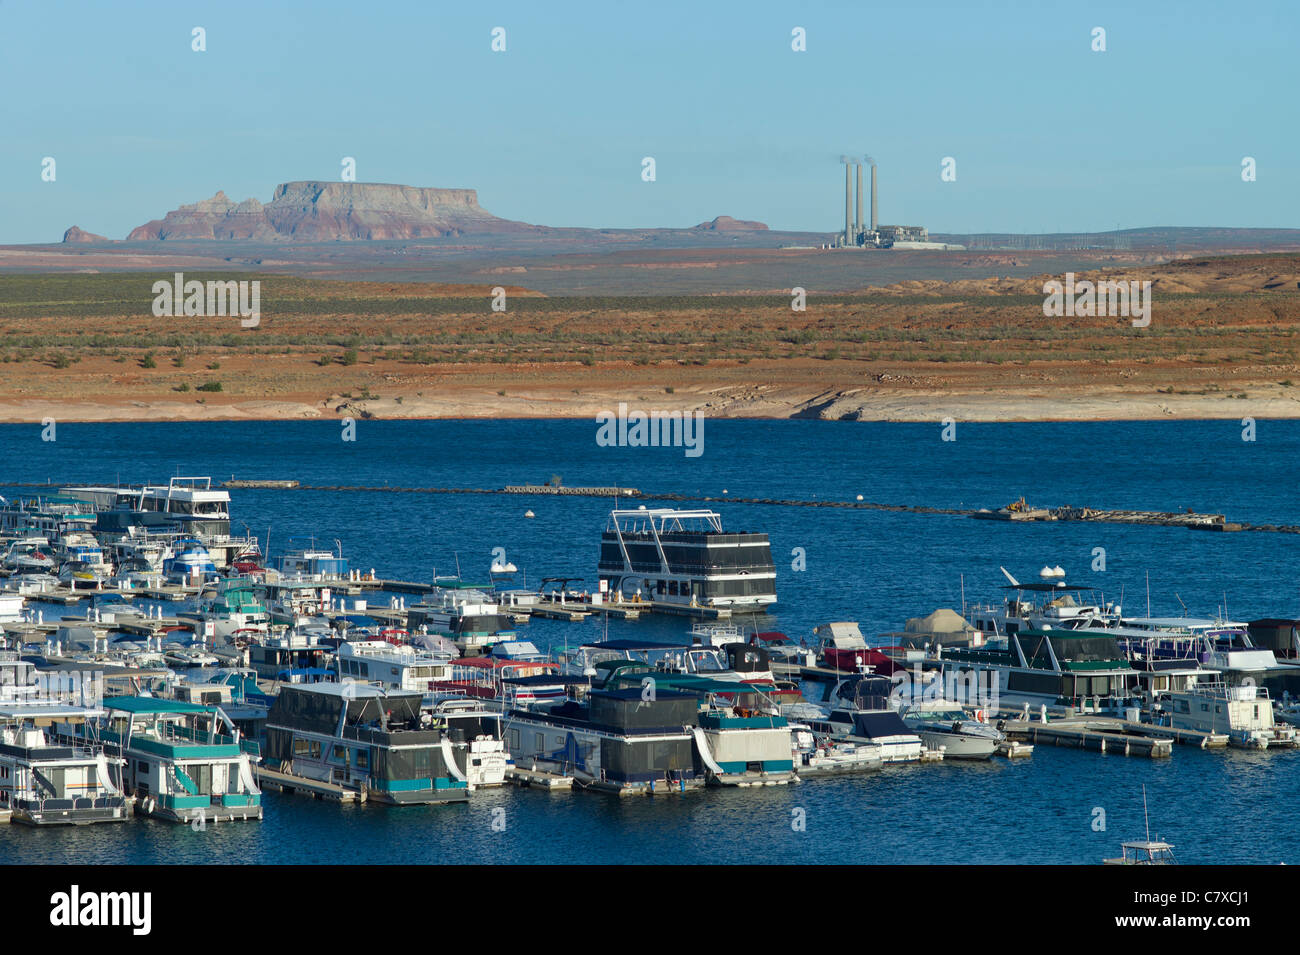 Marina, coal power generating plant, Lake Powell, Arizona, USA - Stock Image